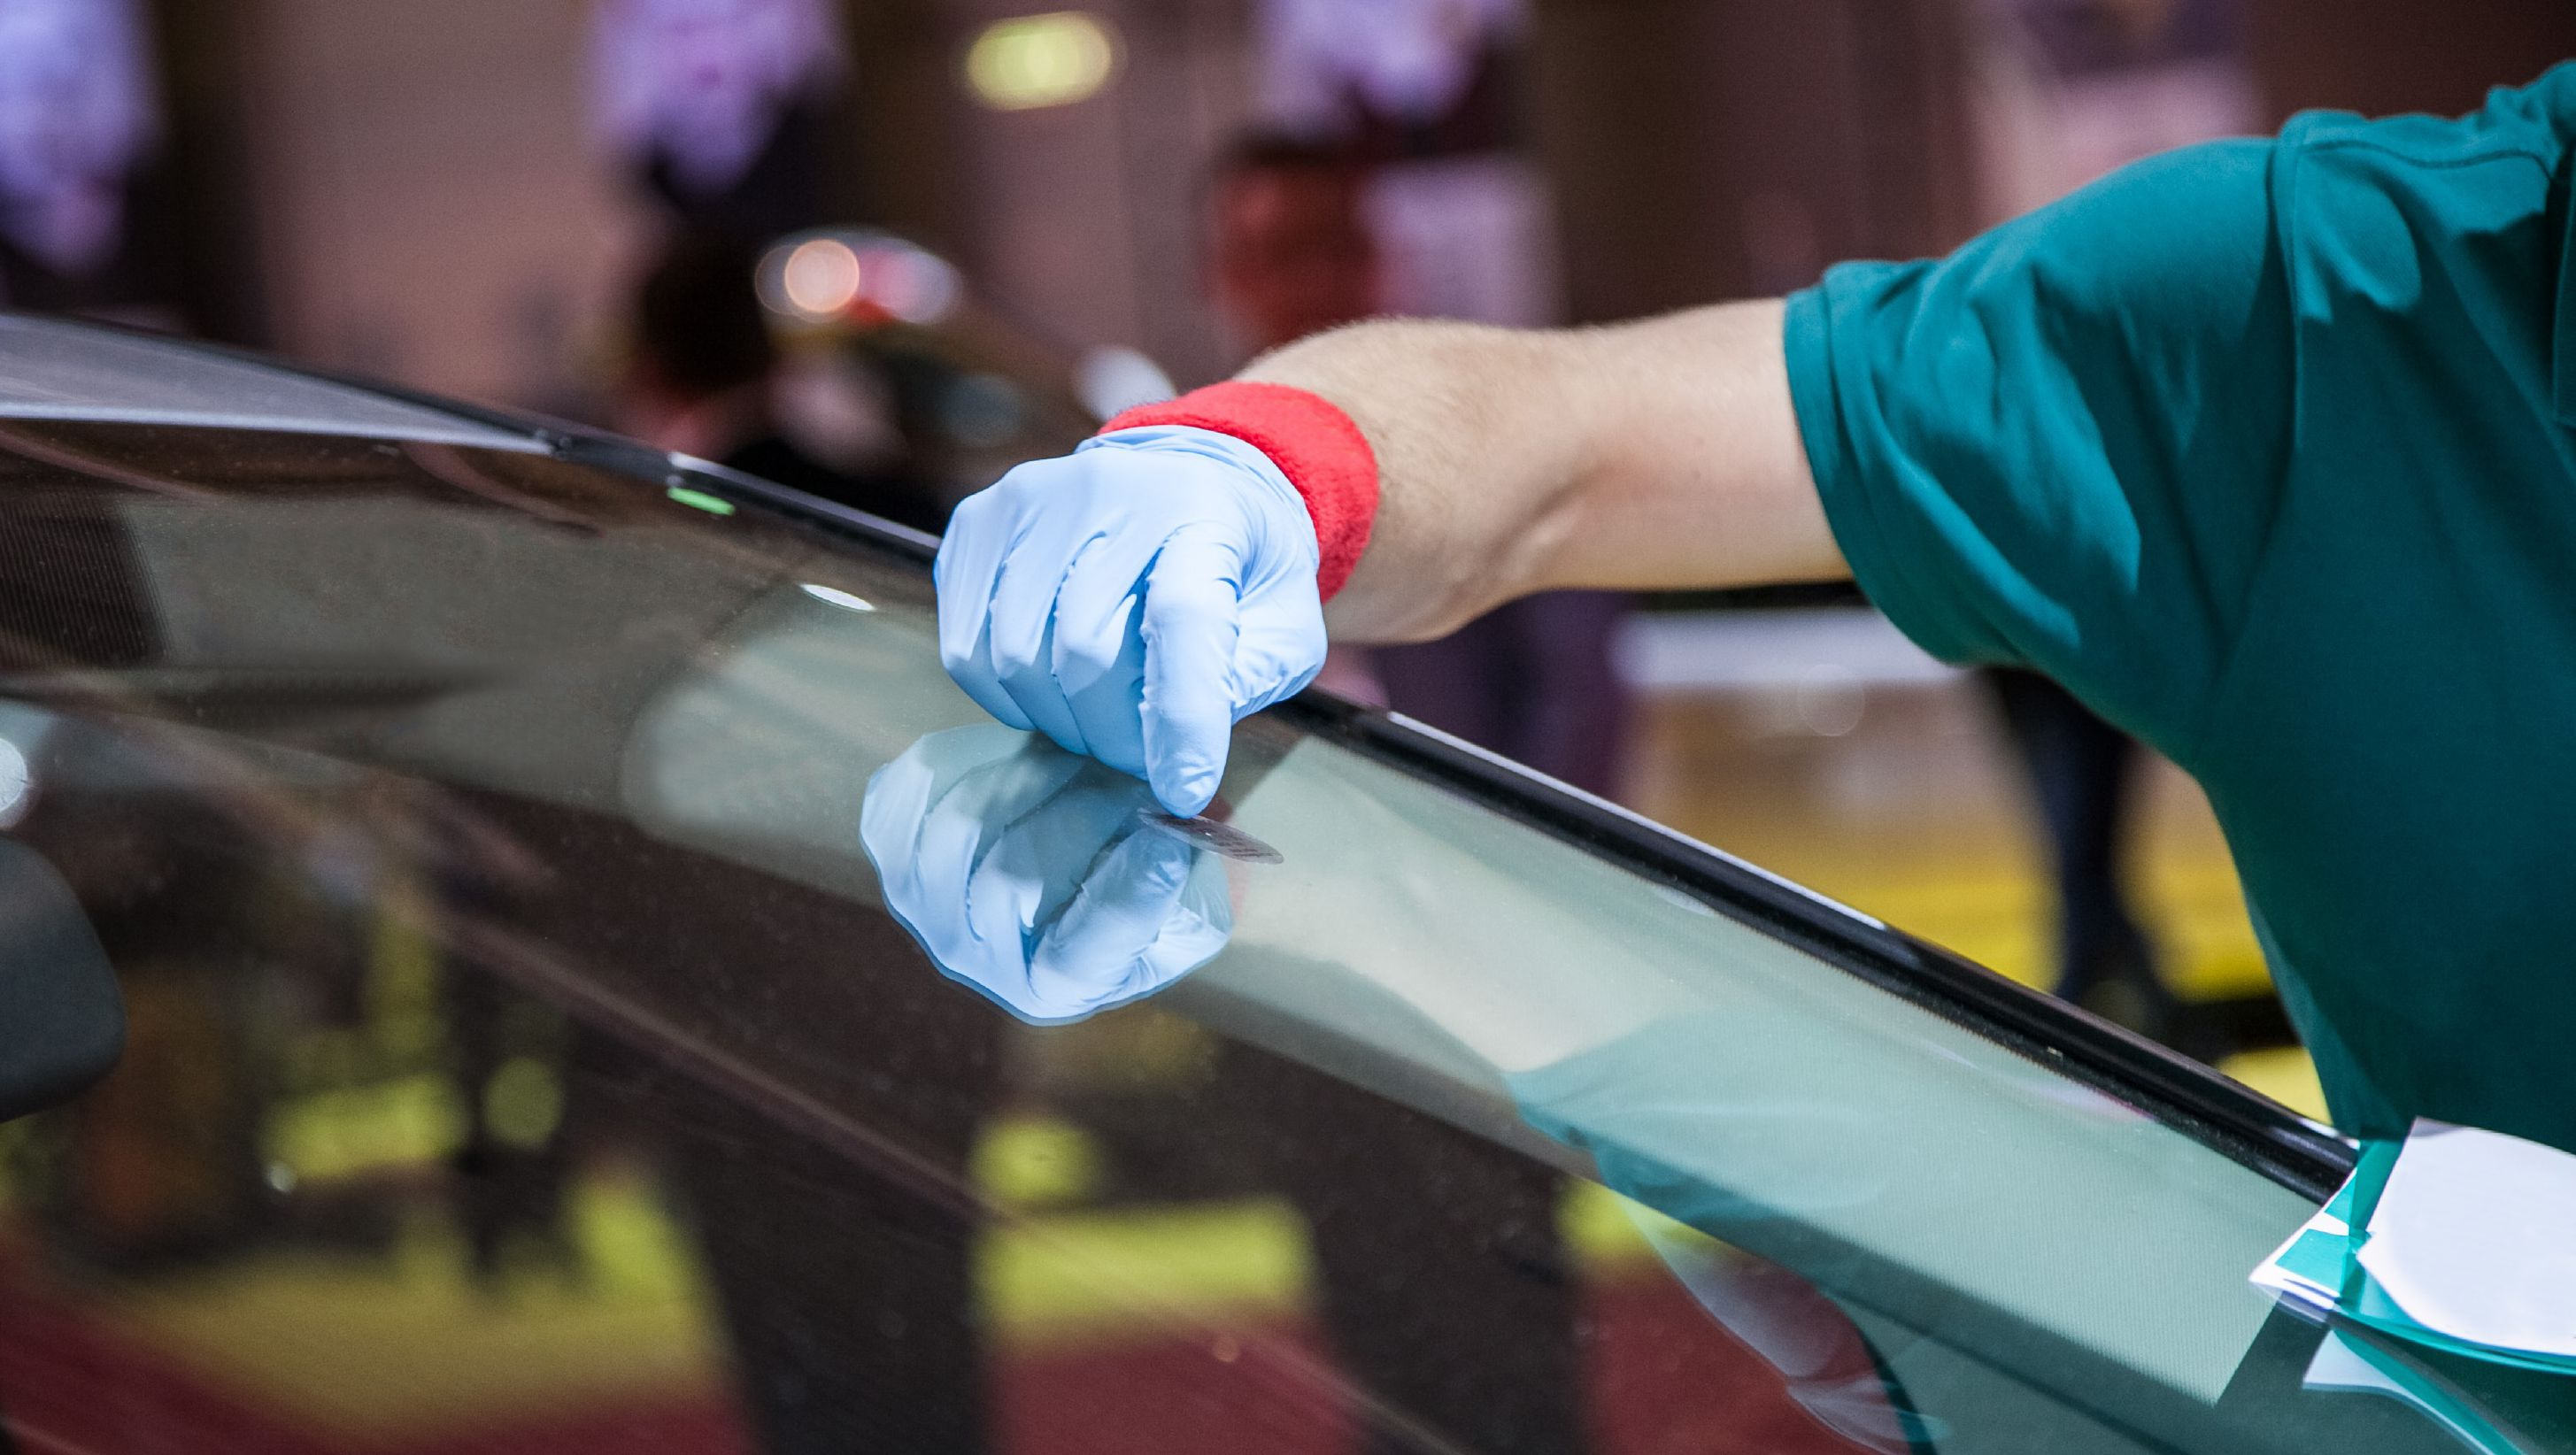 windshield repair for cracked or chipped auto glass in edmonton